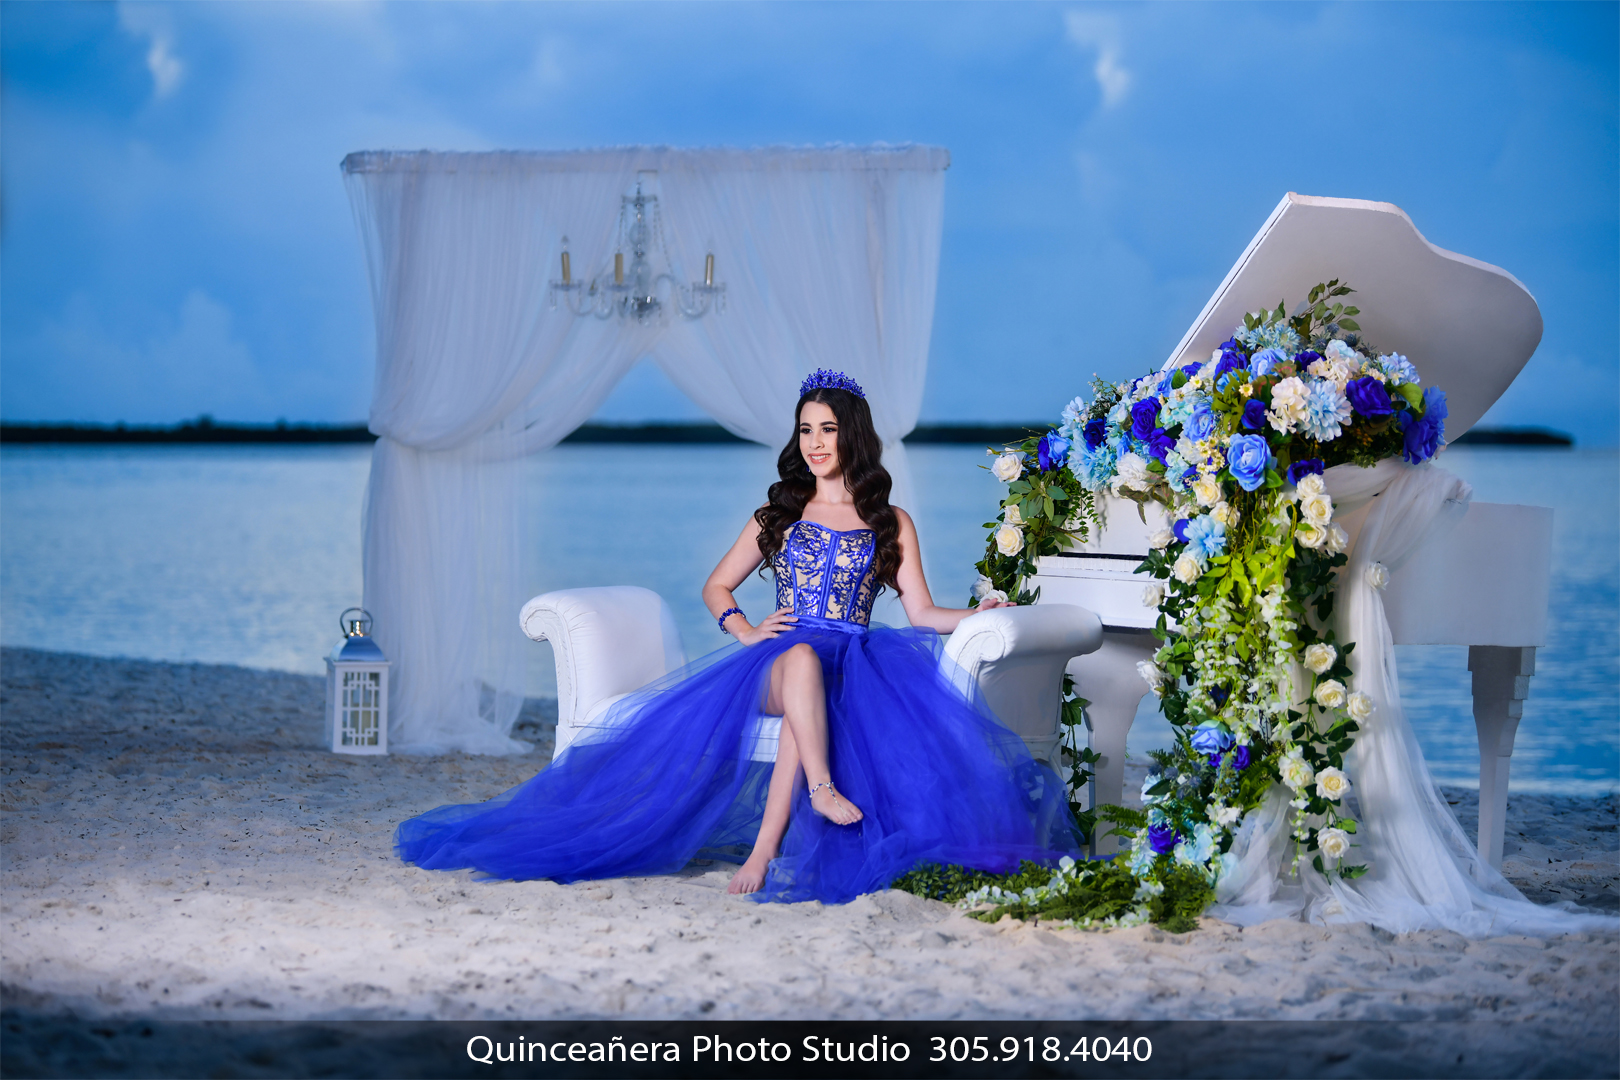 Beautiful quinceañera on the beach. Photo by Quinceanera Photo Studio 305.918.4040